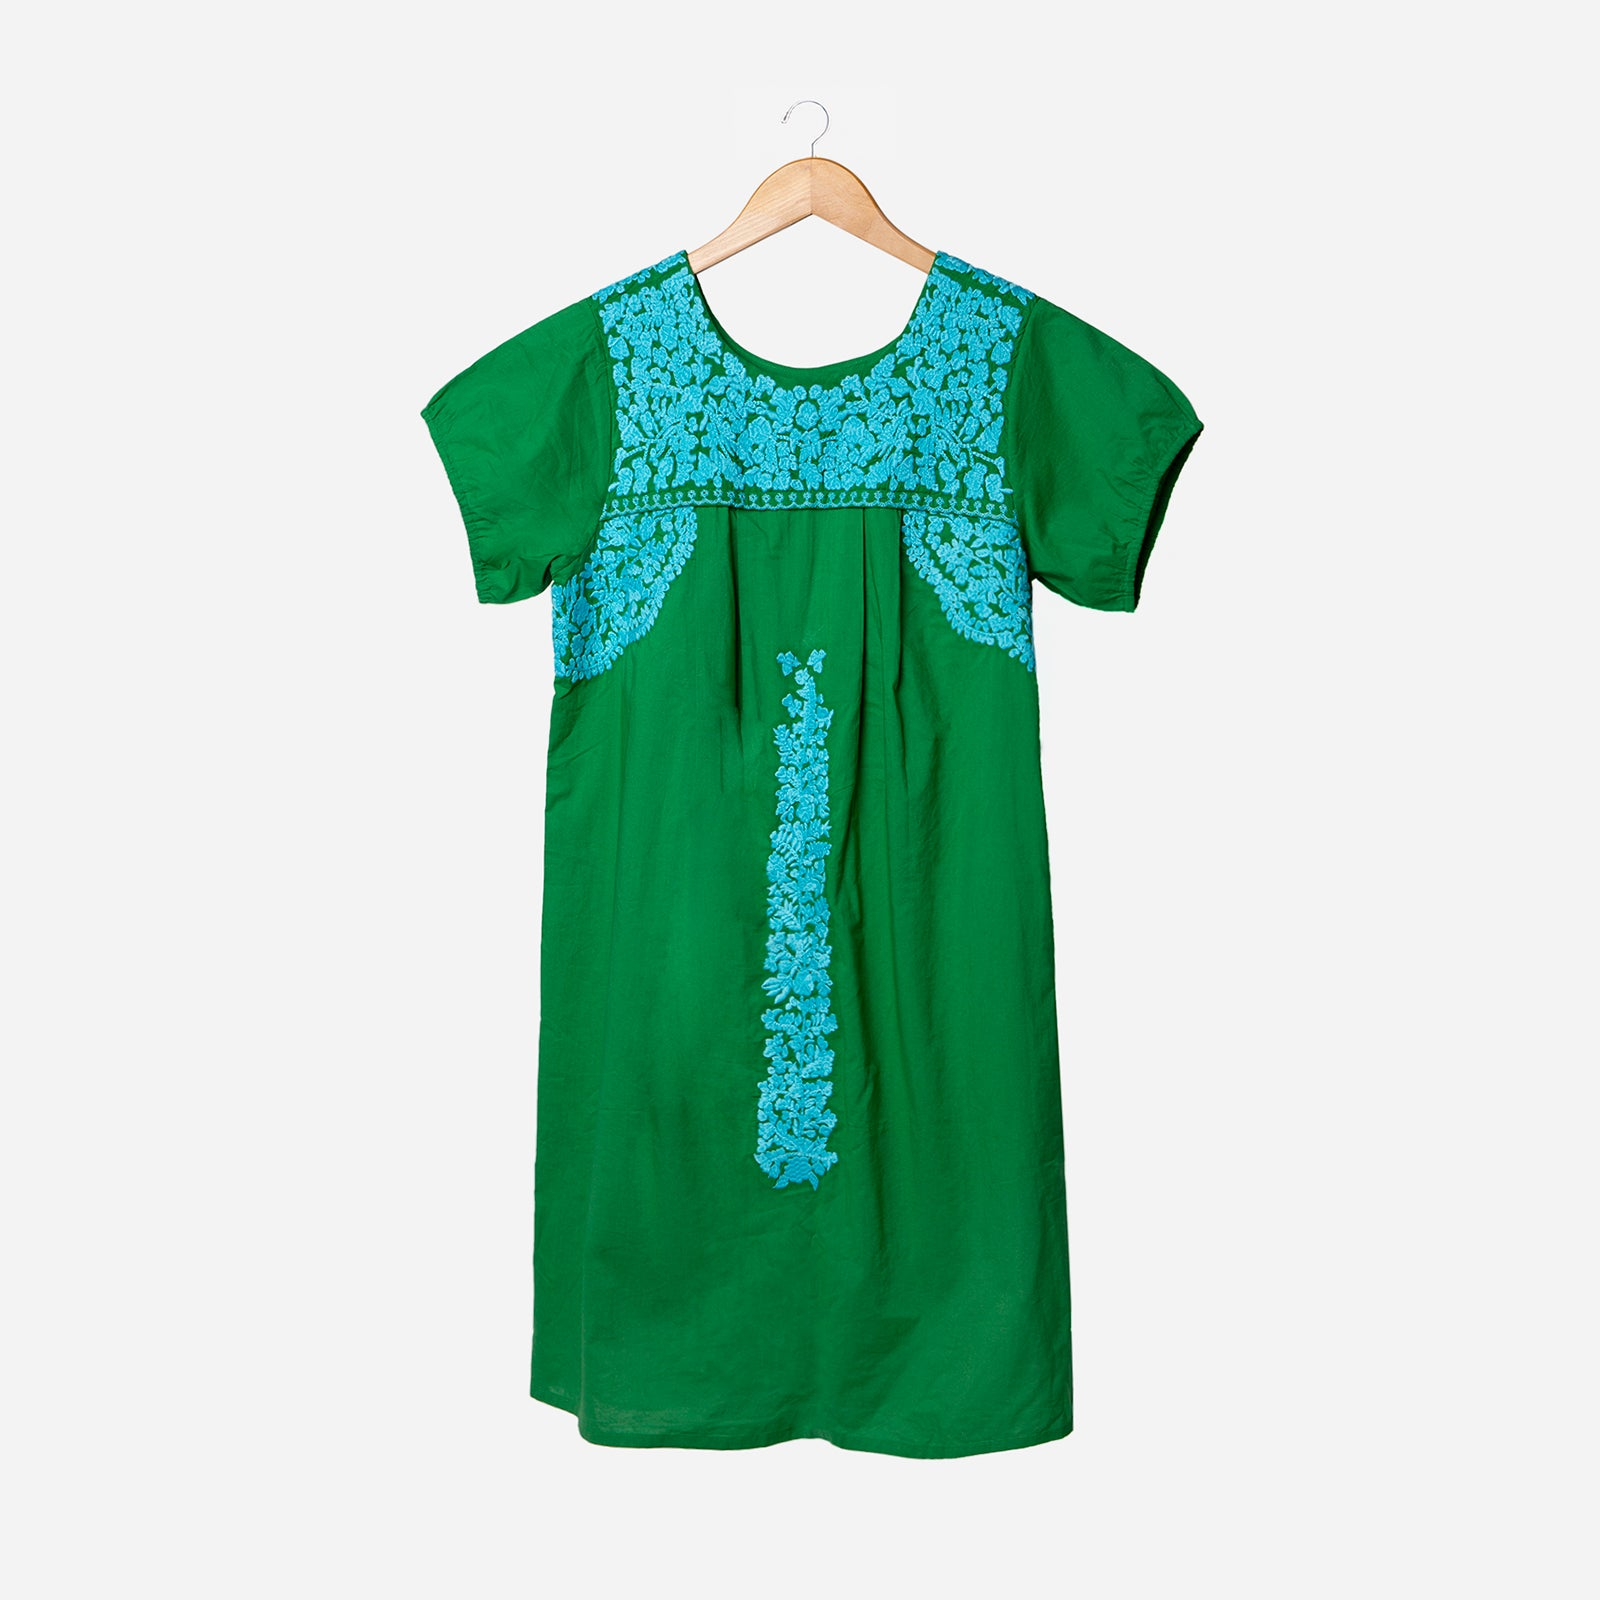 Floral Embroidered Lace Dress Green Light Blue - Frances Valentine